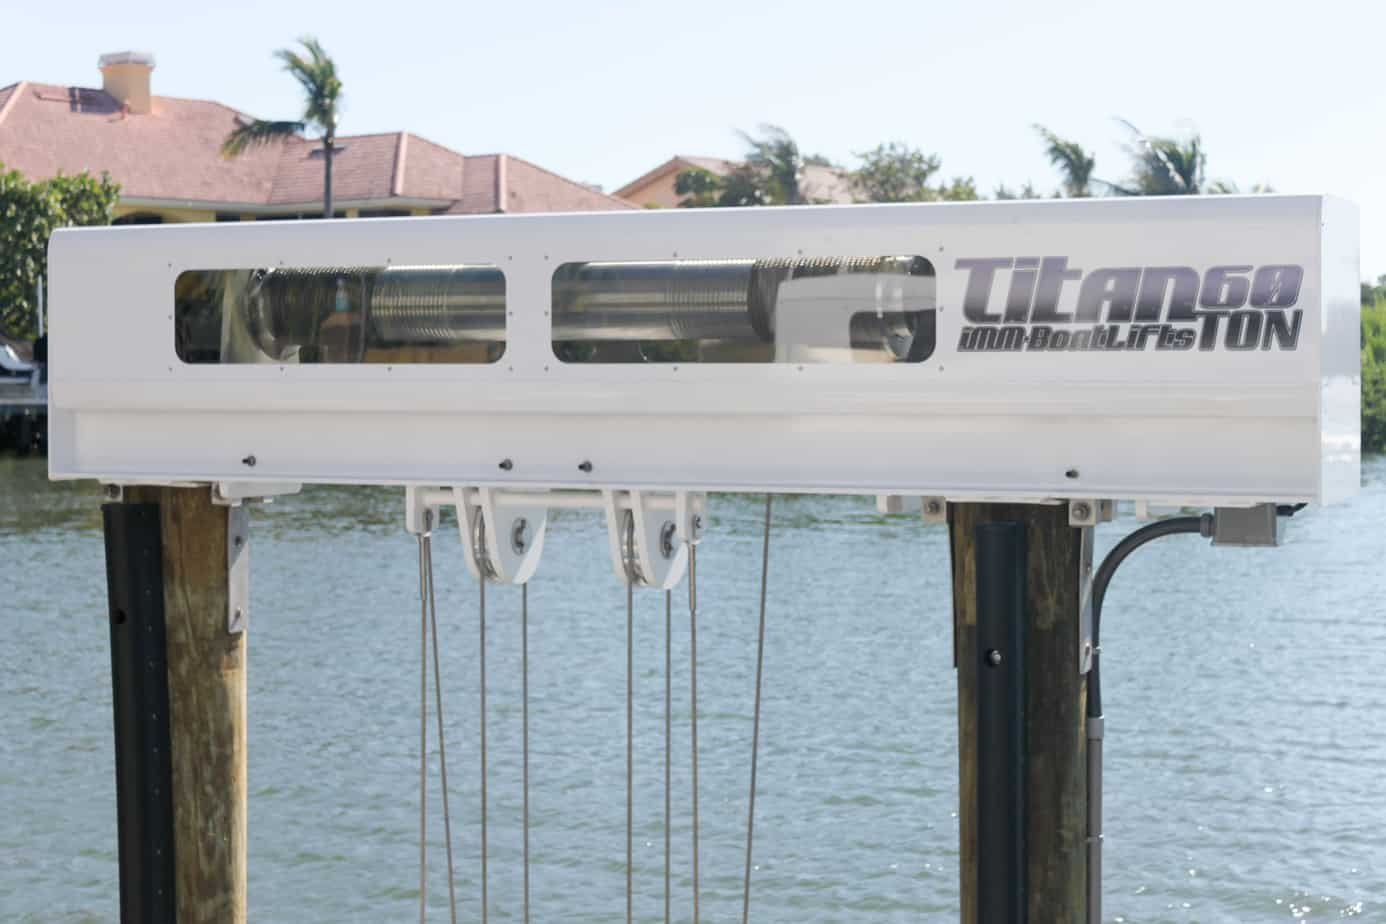 Blog - image patented-technology-Titan-Beam on https://www.iqboatlifts.com